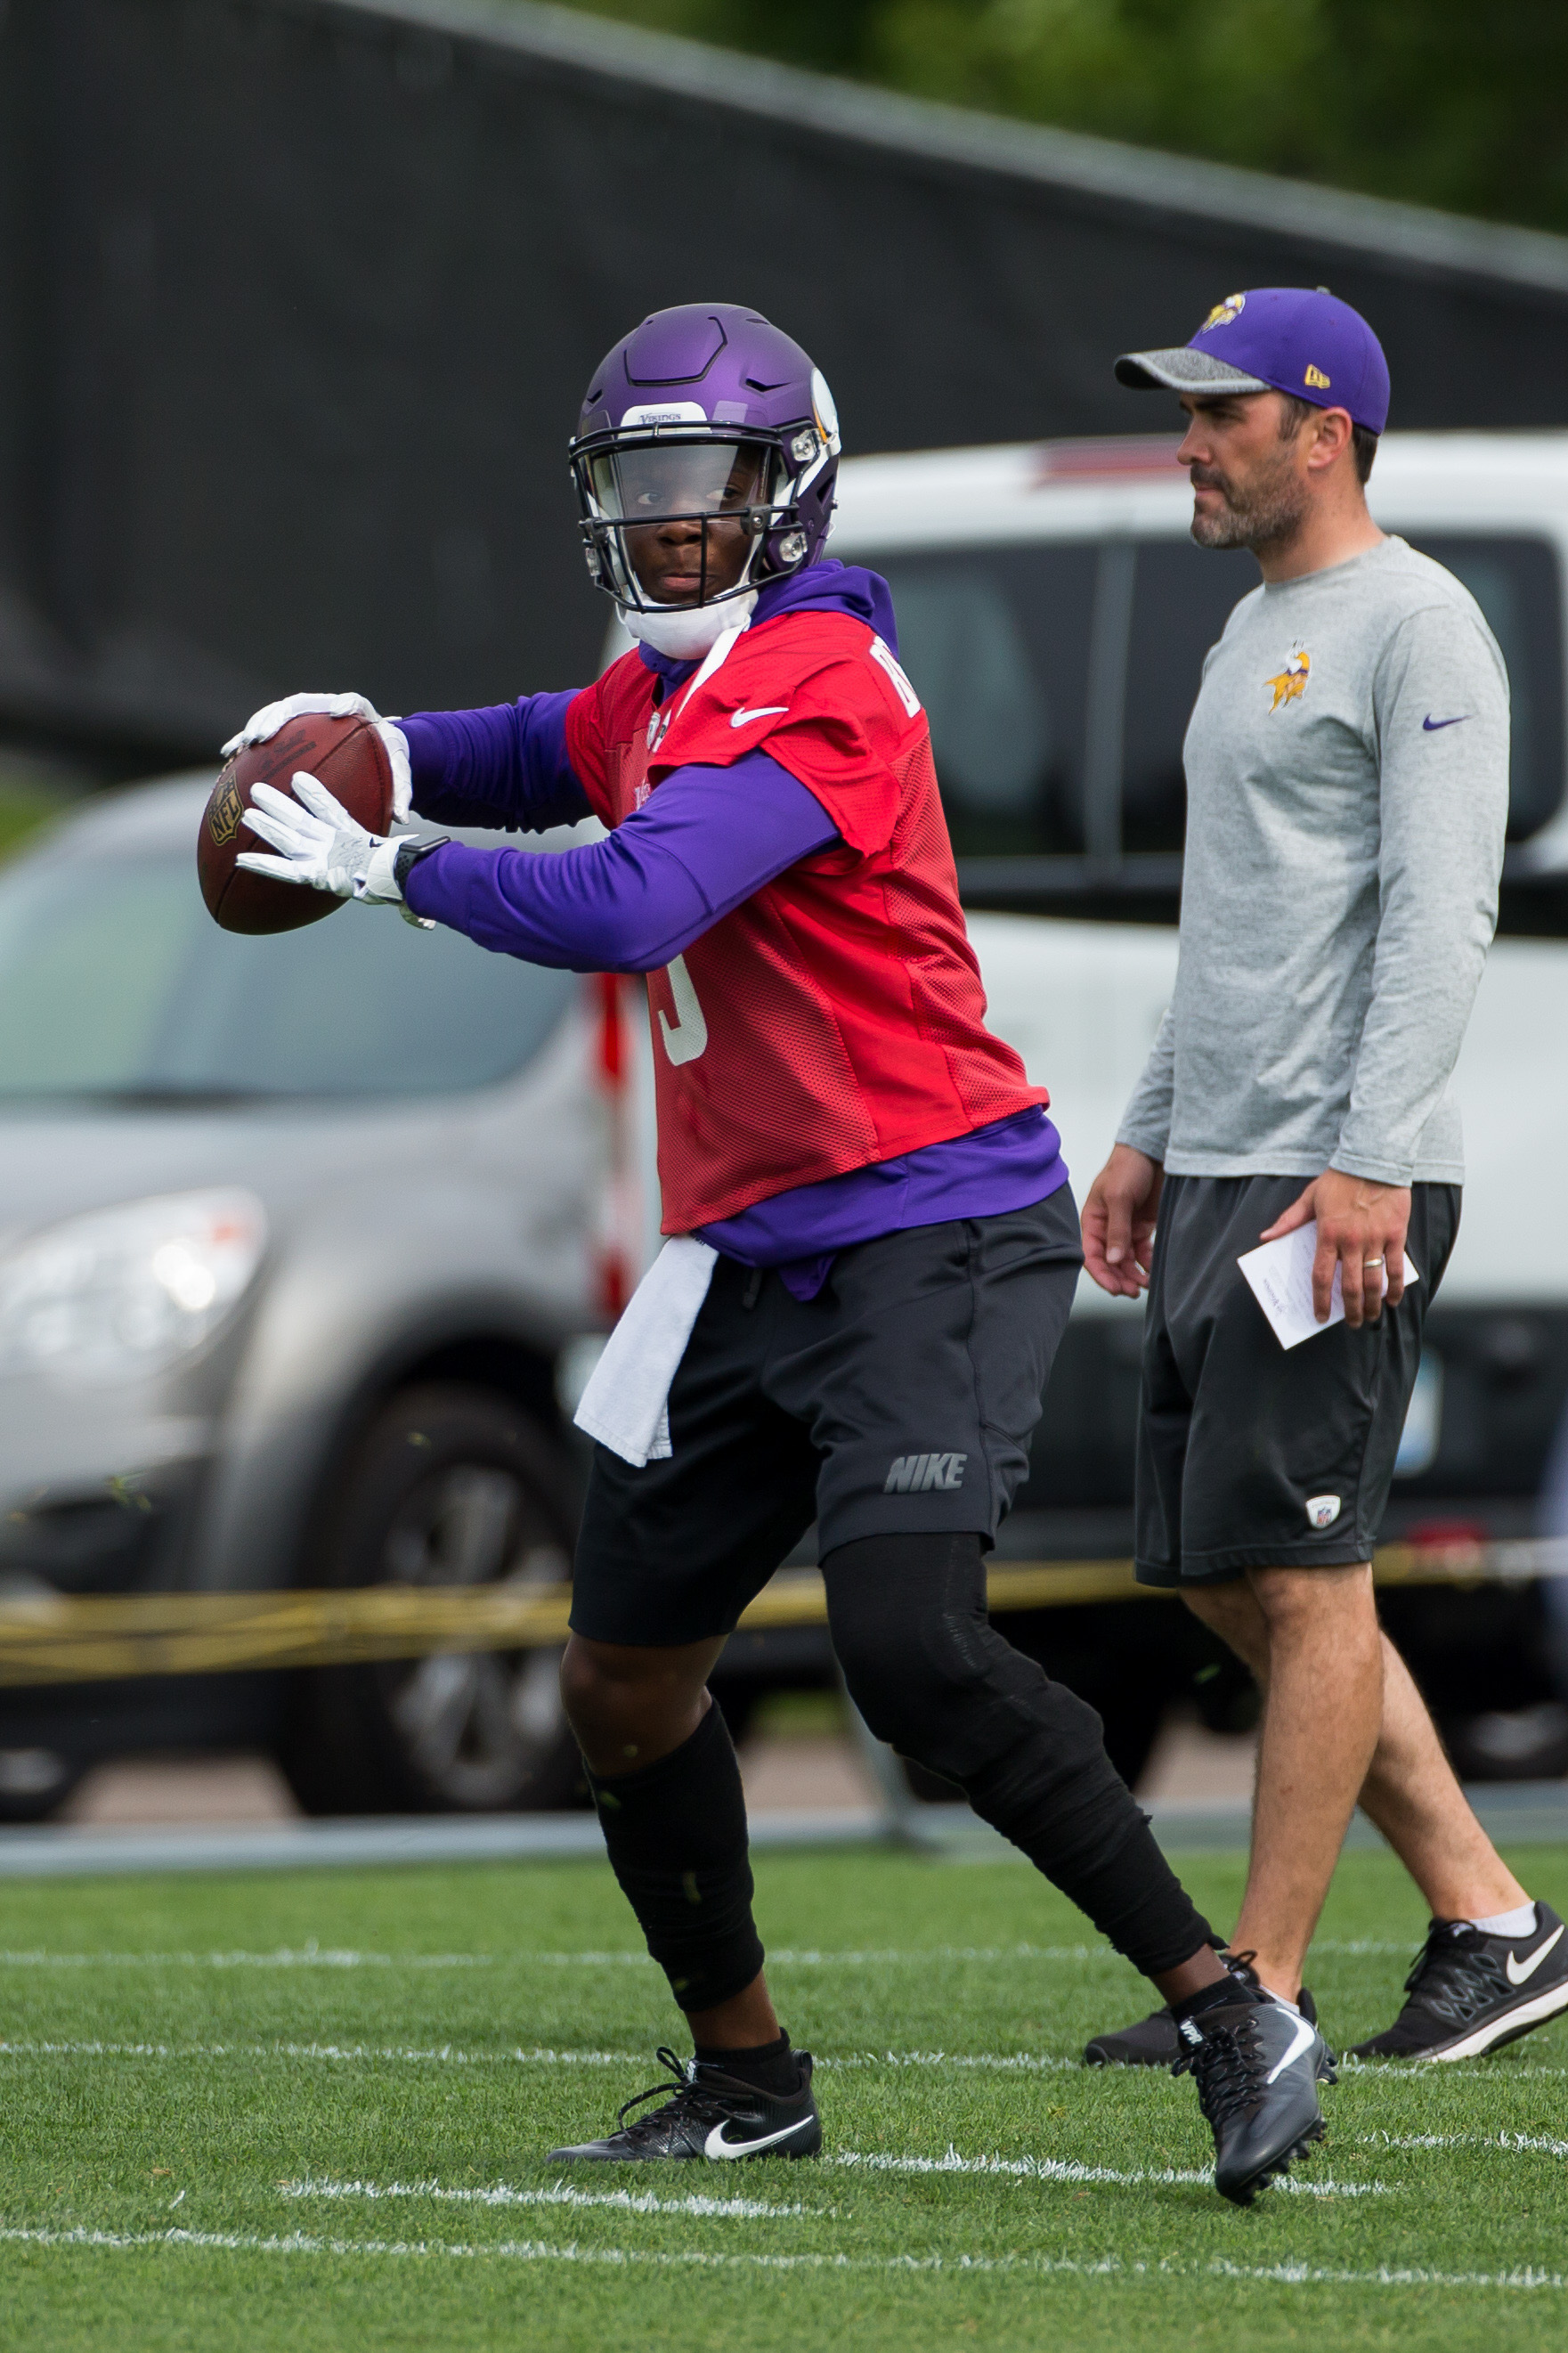 Teddy bridgewater injury update vikings expect qb to miss 2017 too report says sporting news - More Teddy Bridgewater Video Yes More Teddy Bridgewater Video A New Video Released Yesterday Shows Some Fancy Footwork From 5